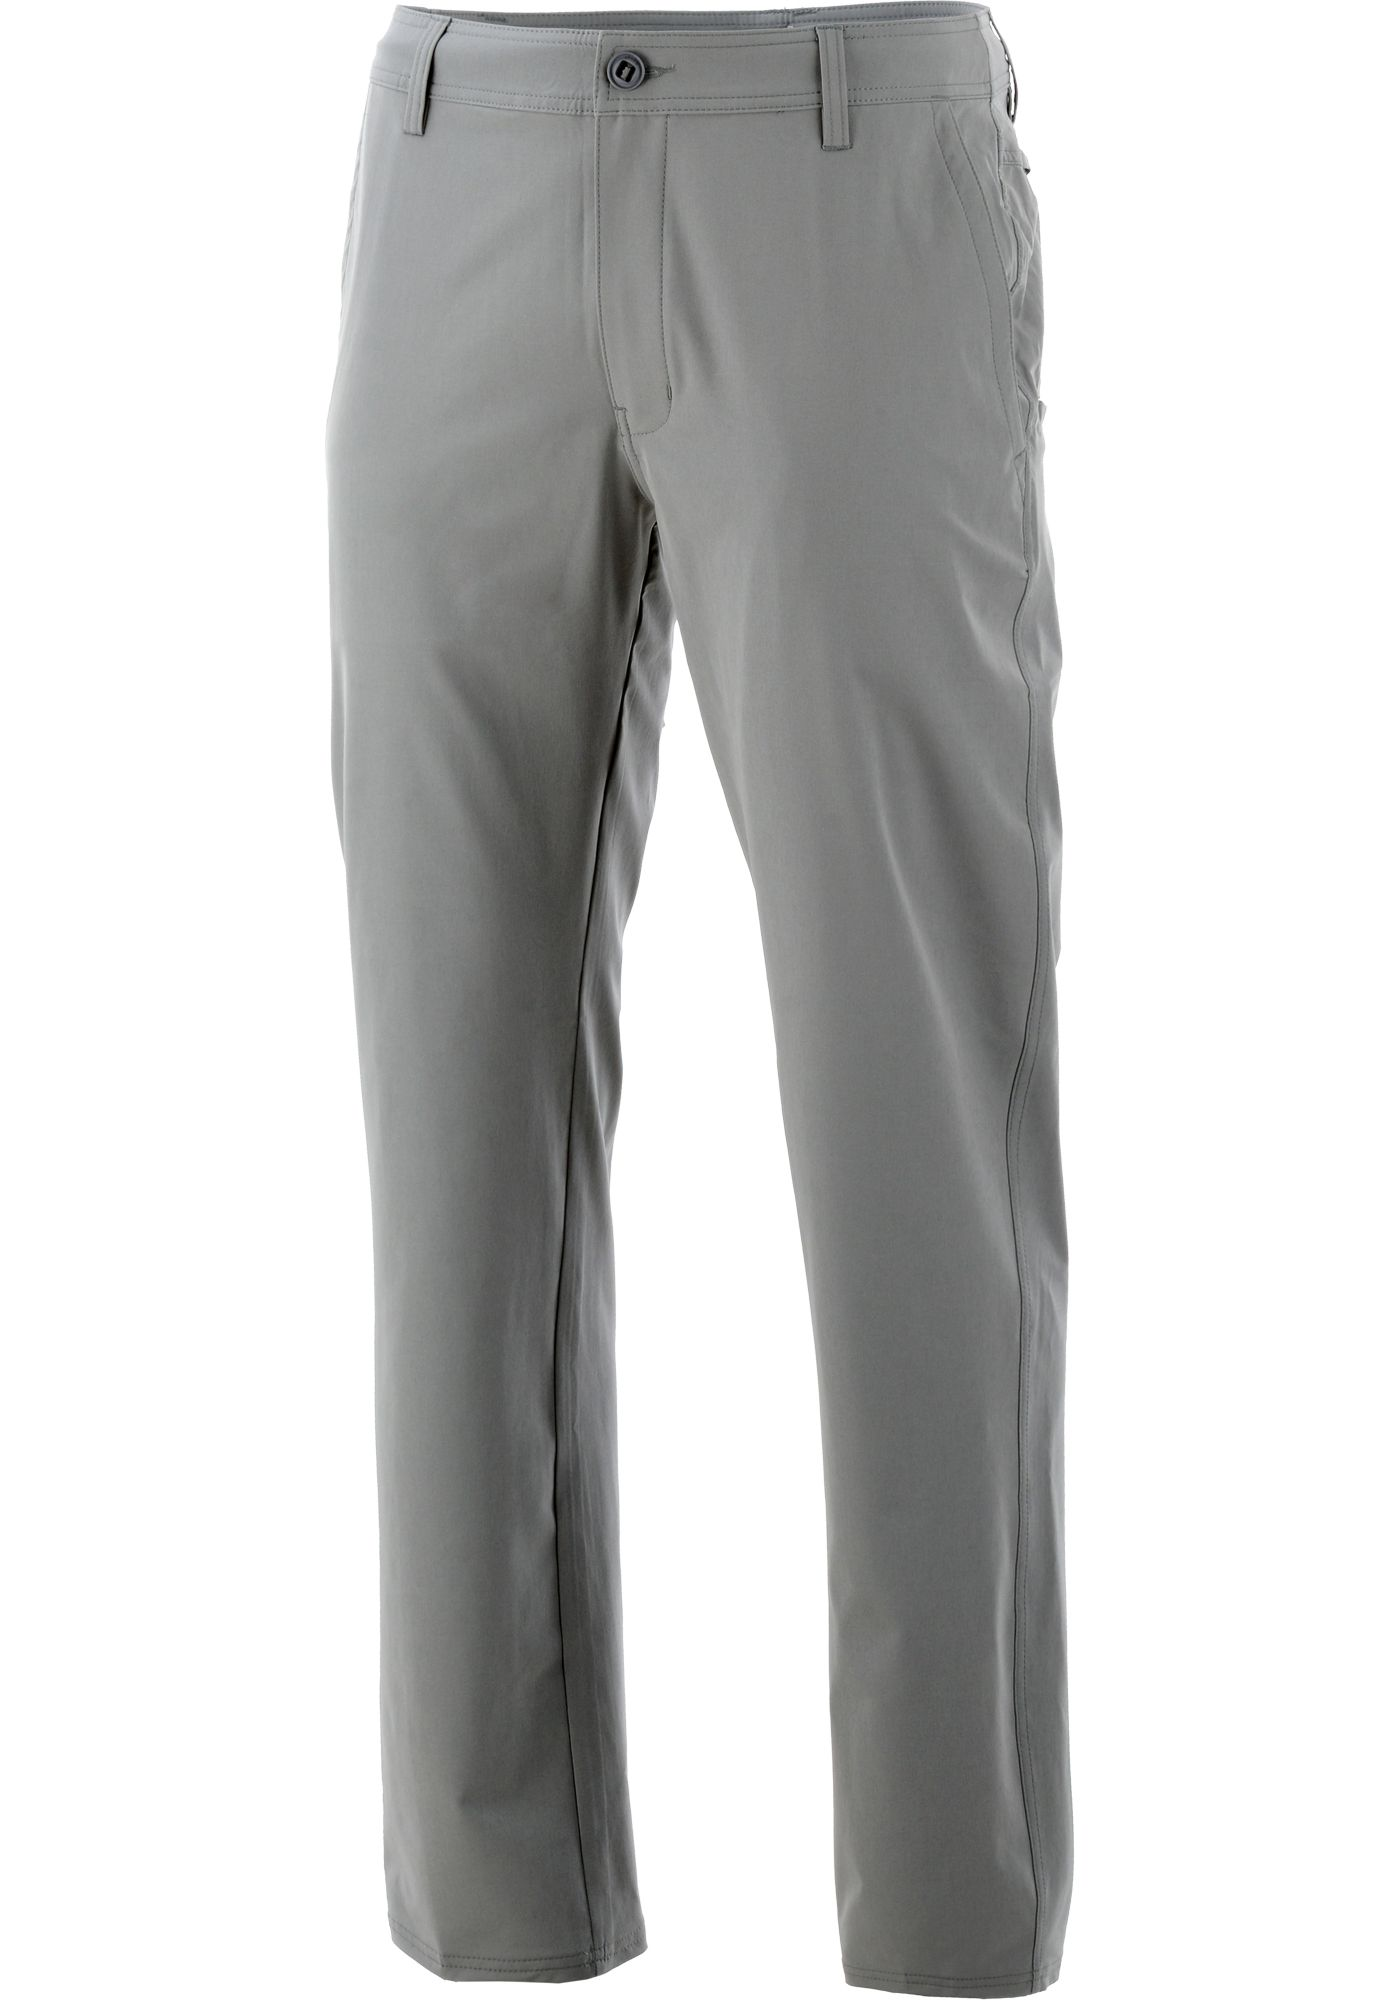 Huk Men's Reserve Pants